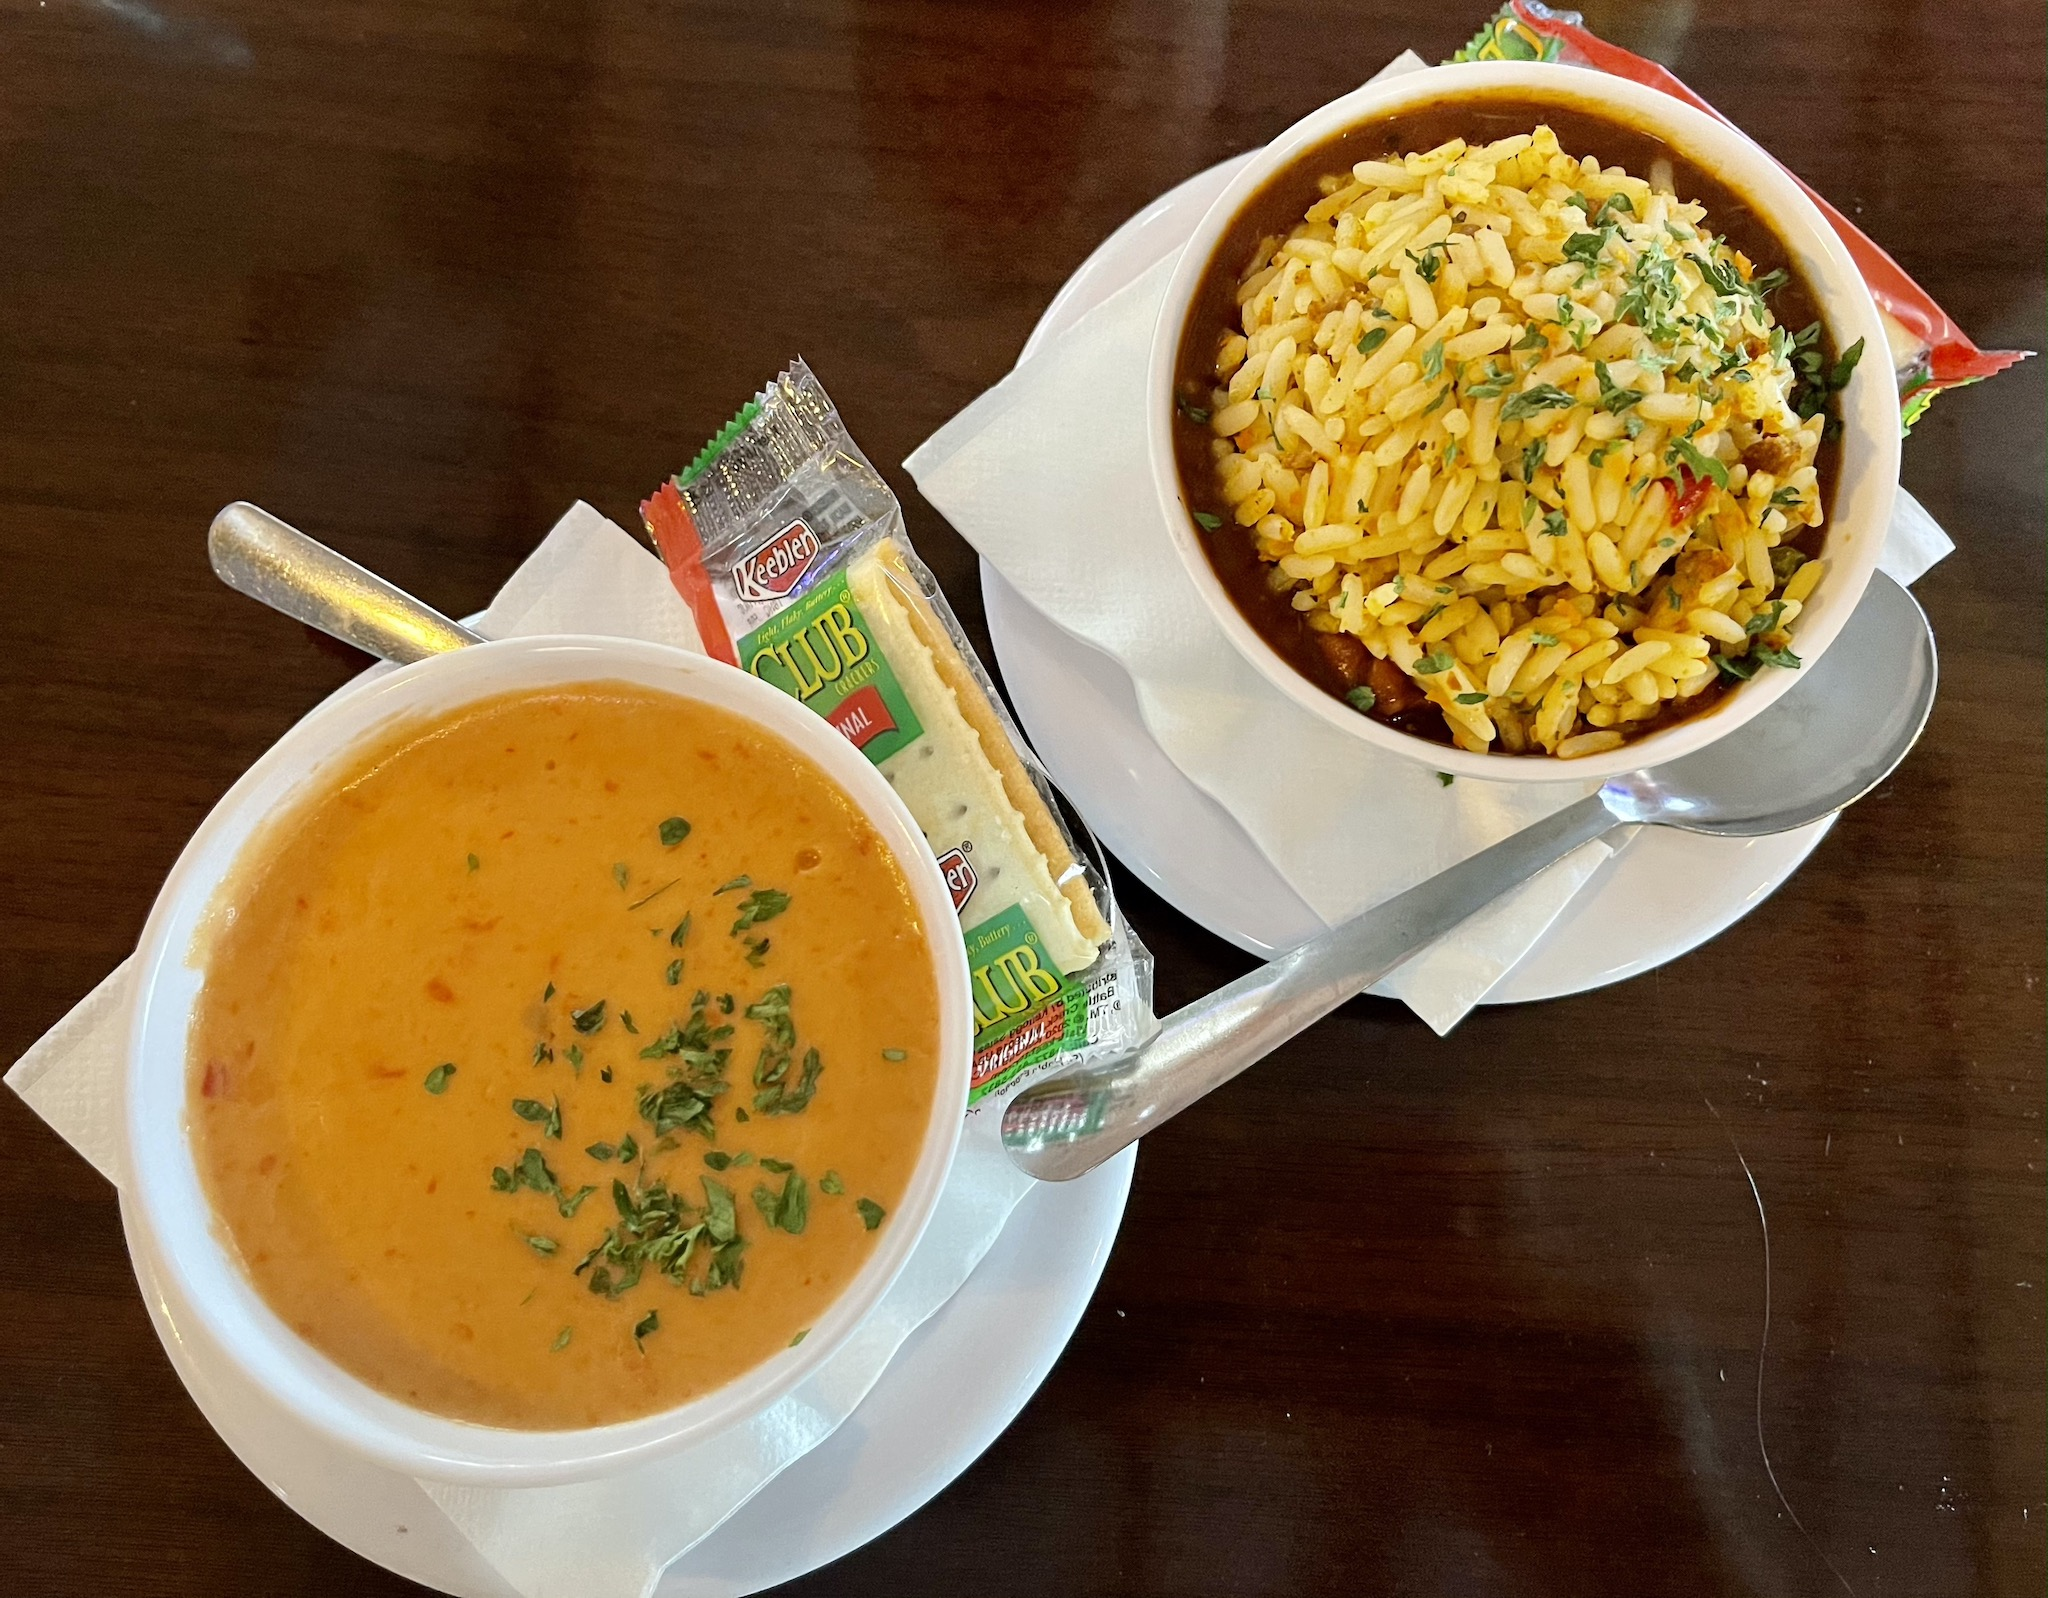 Shrimpys Shrimp and Lobster Bisque and Louisiana Seafood Gumbo